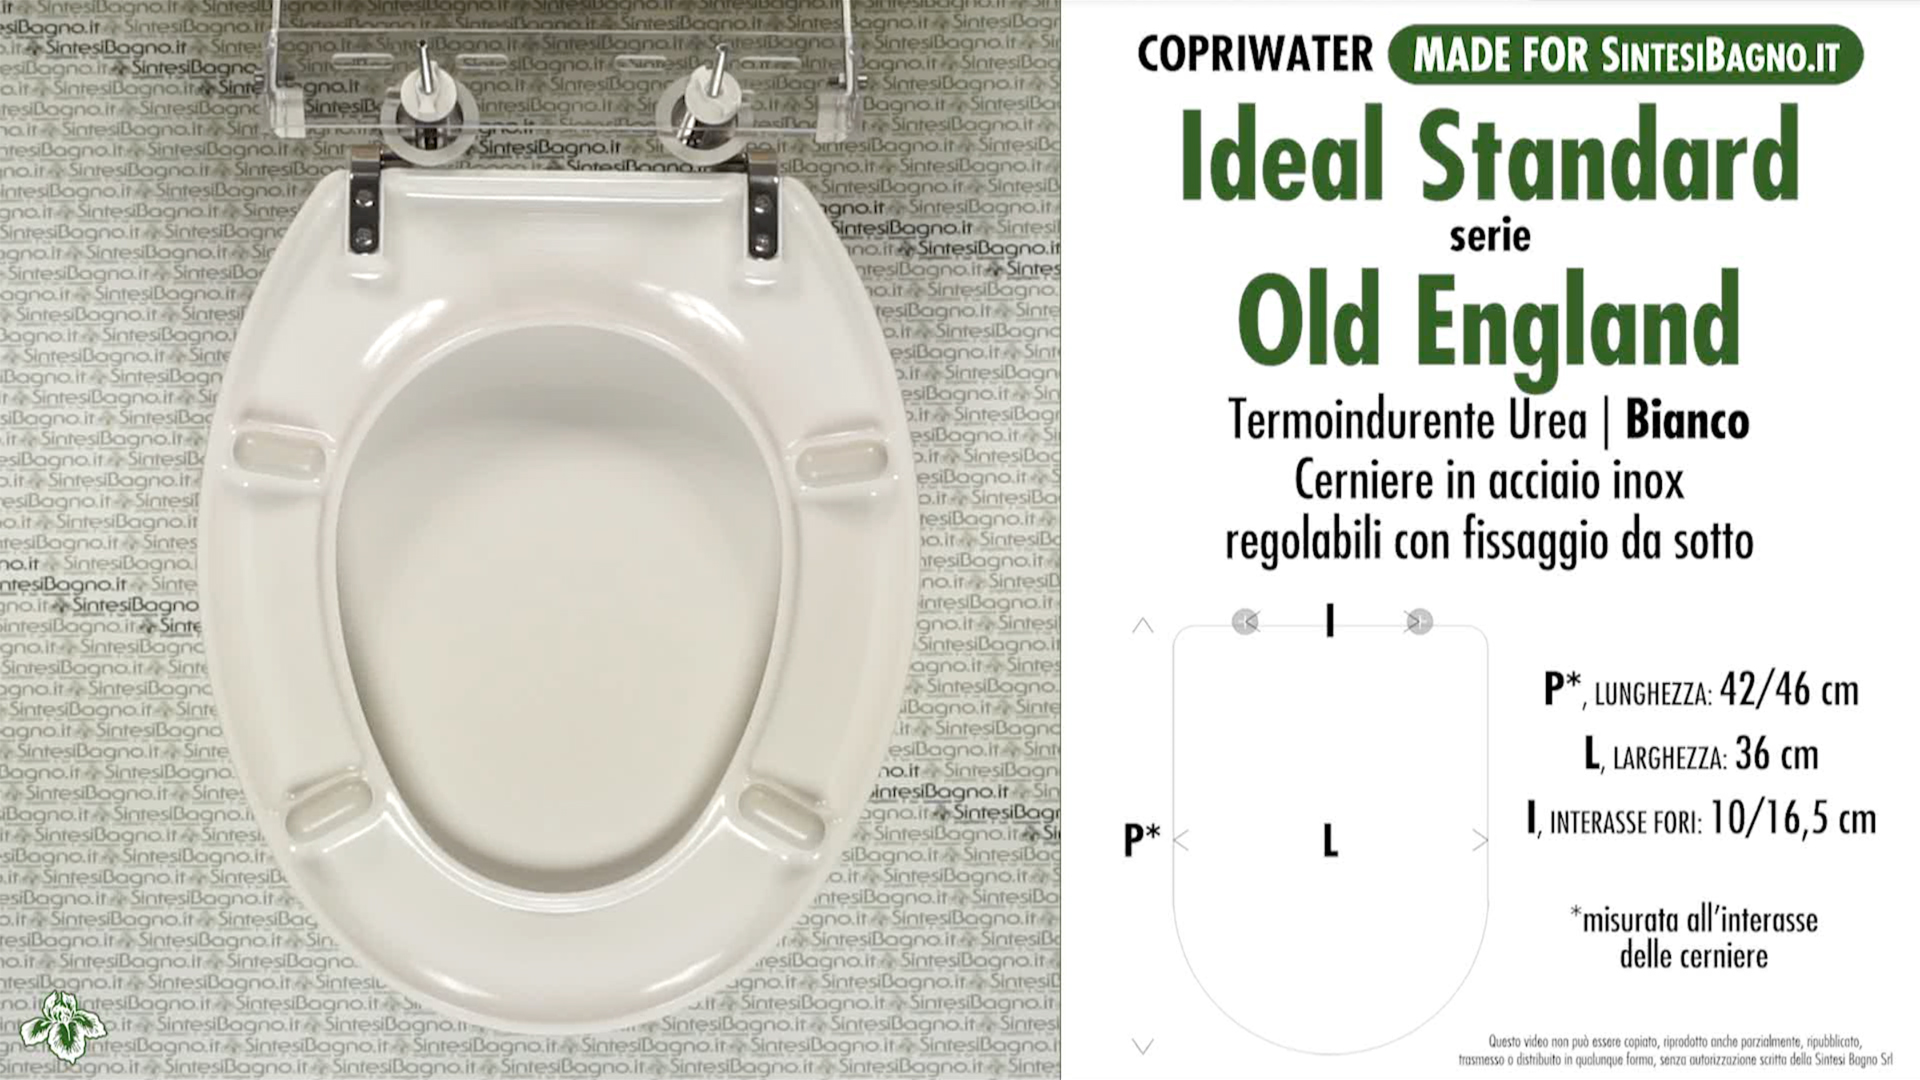 SCHEDA TECNICA MISURE copriwater IDEAL STANDARD OLD ENGLAND